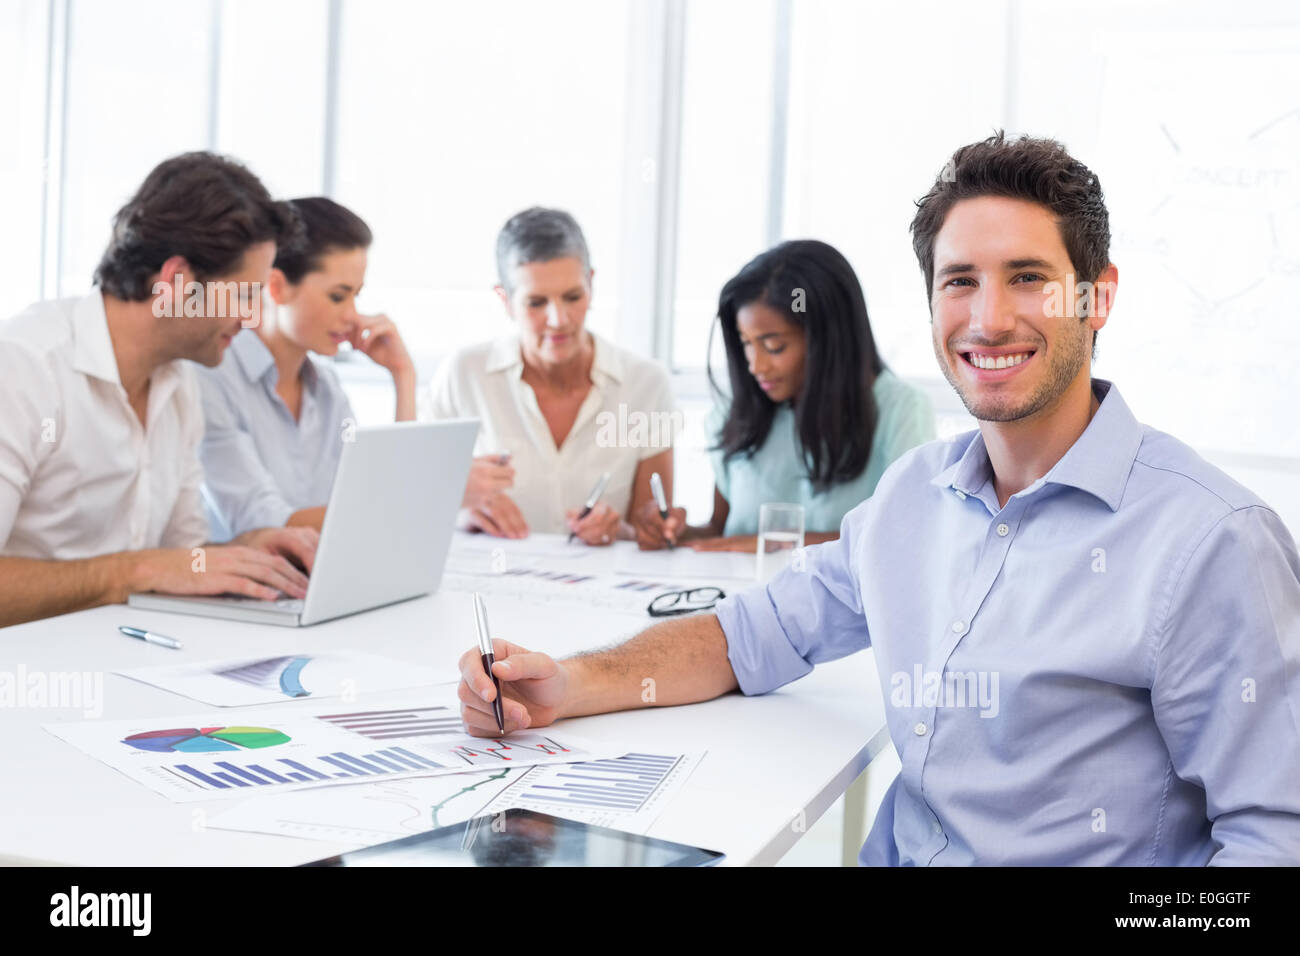 Handsome businessman smiling sur le lieu de travail Photo Stock